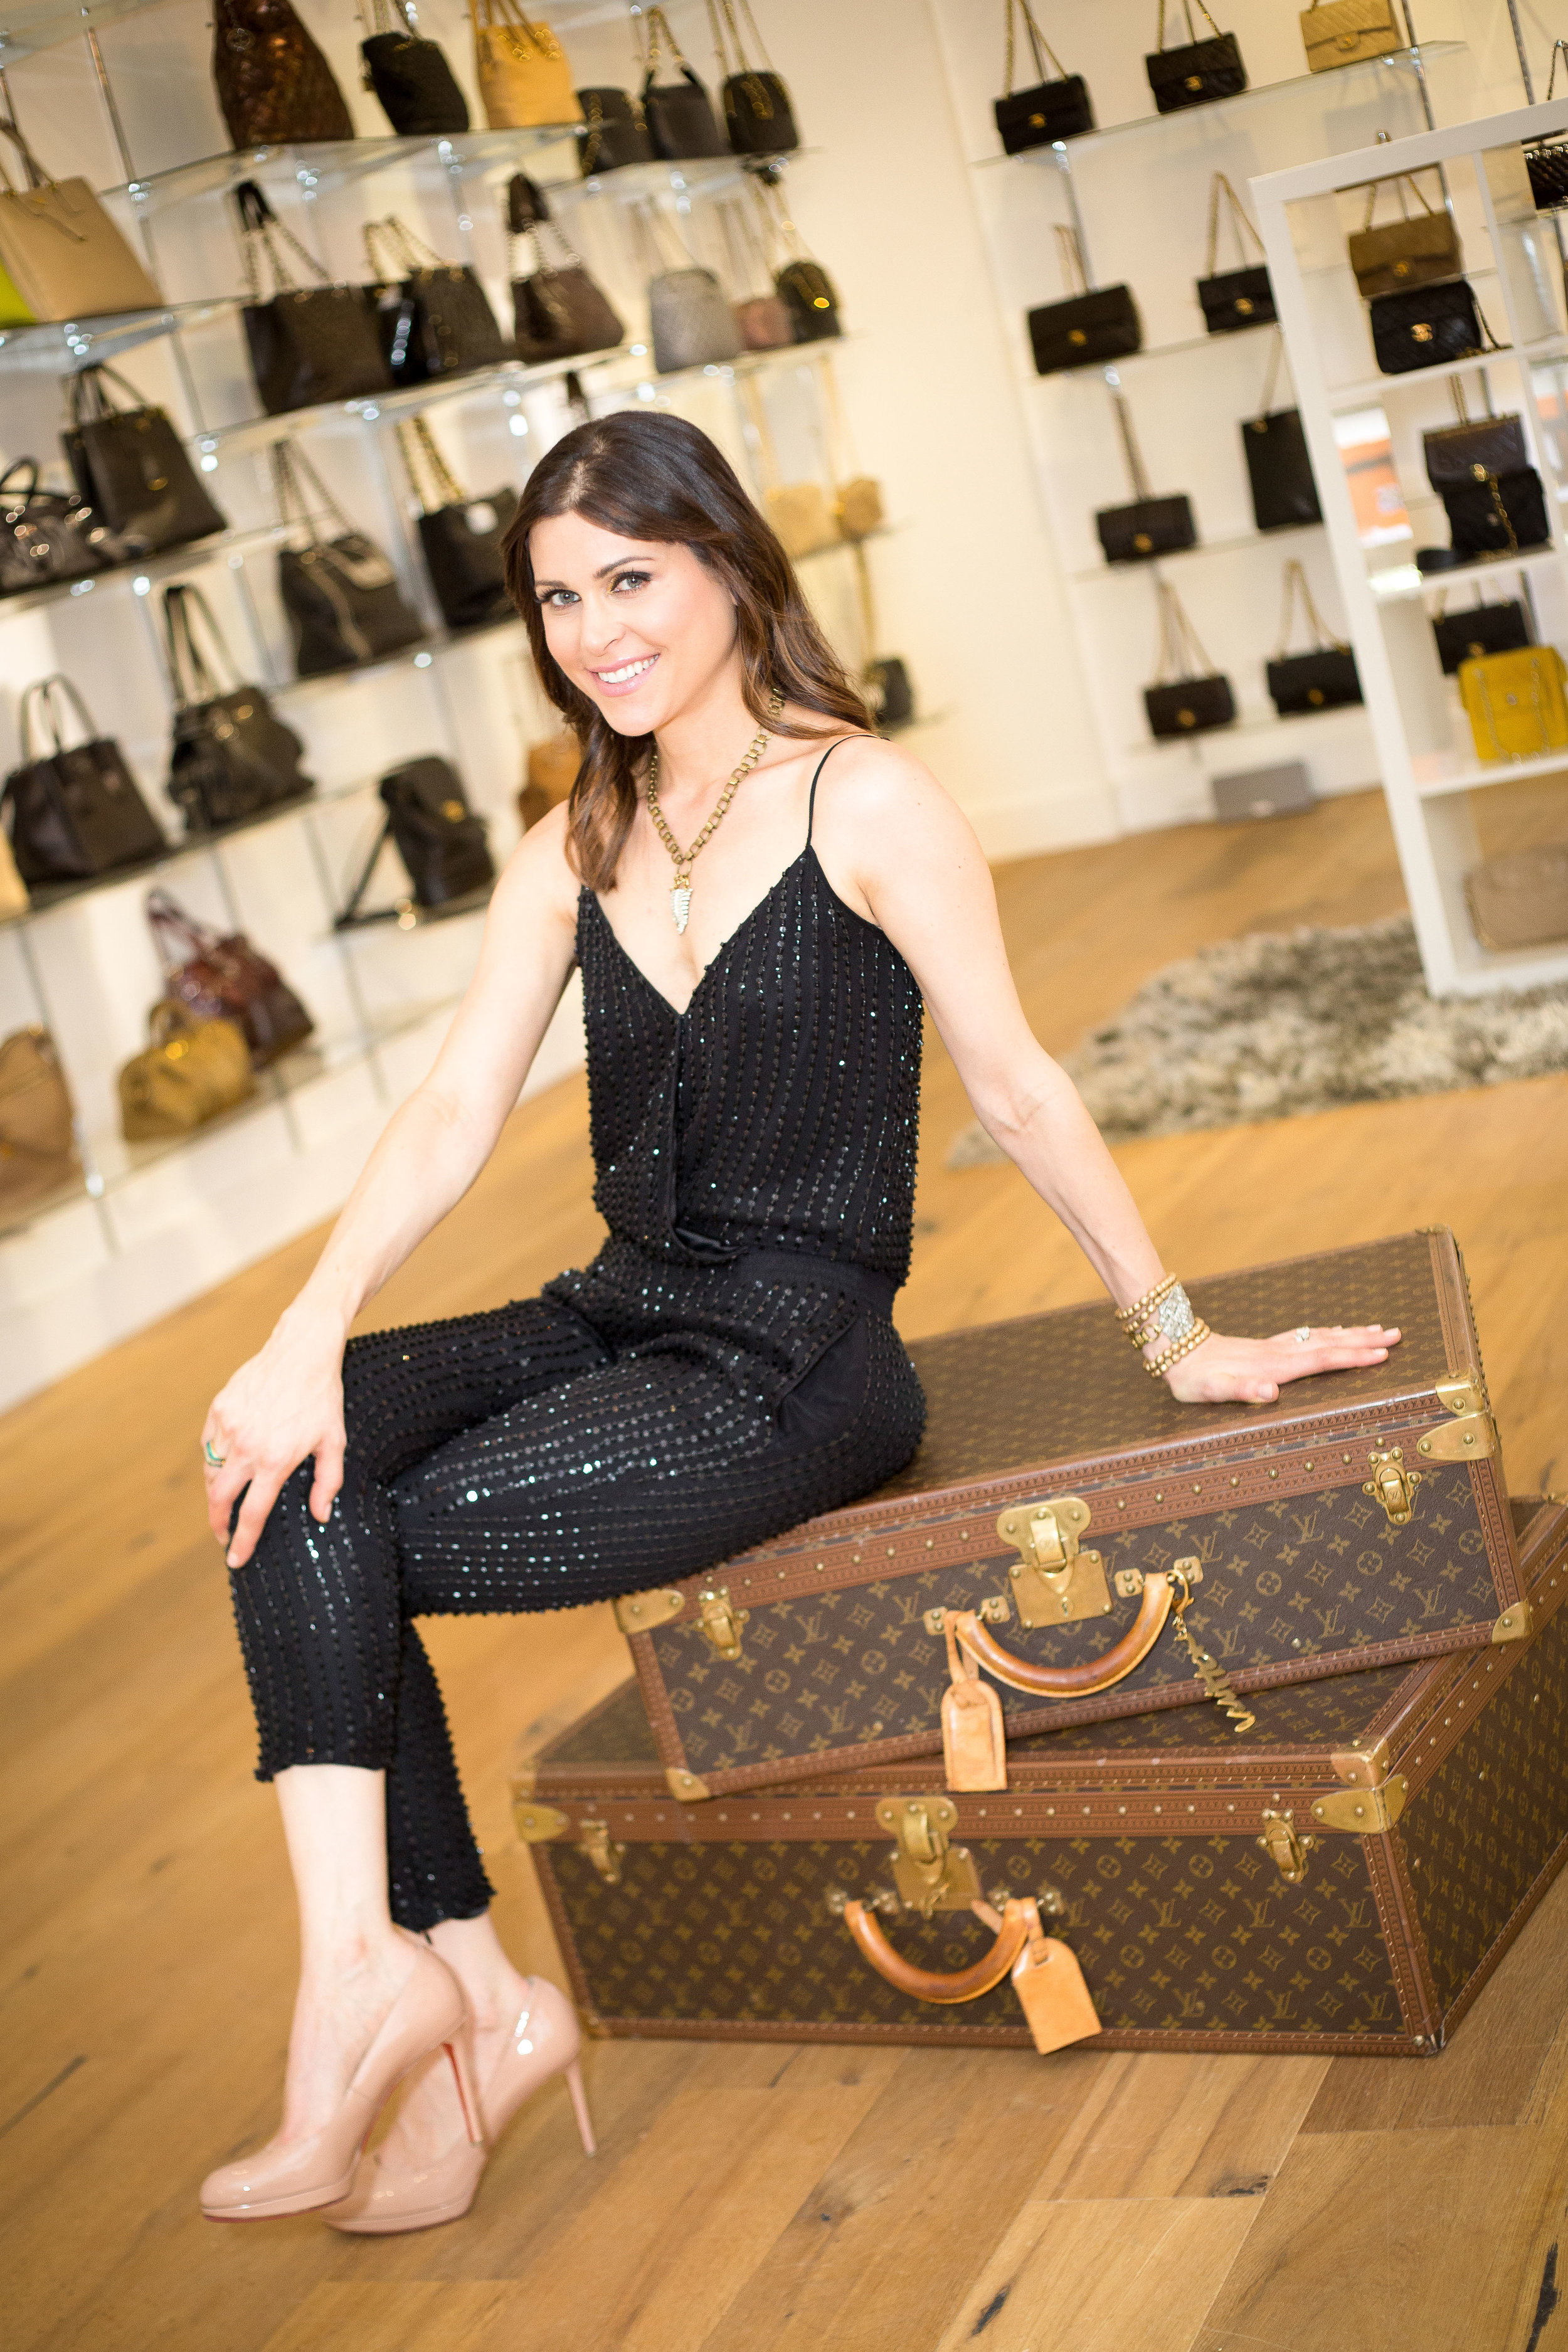 Cassandra Connors, Owner of Bella Bag